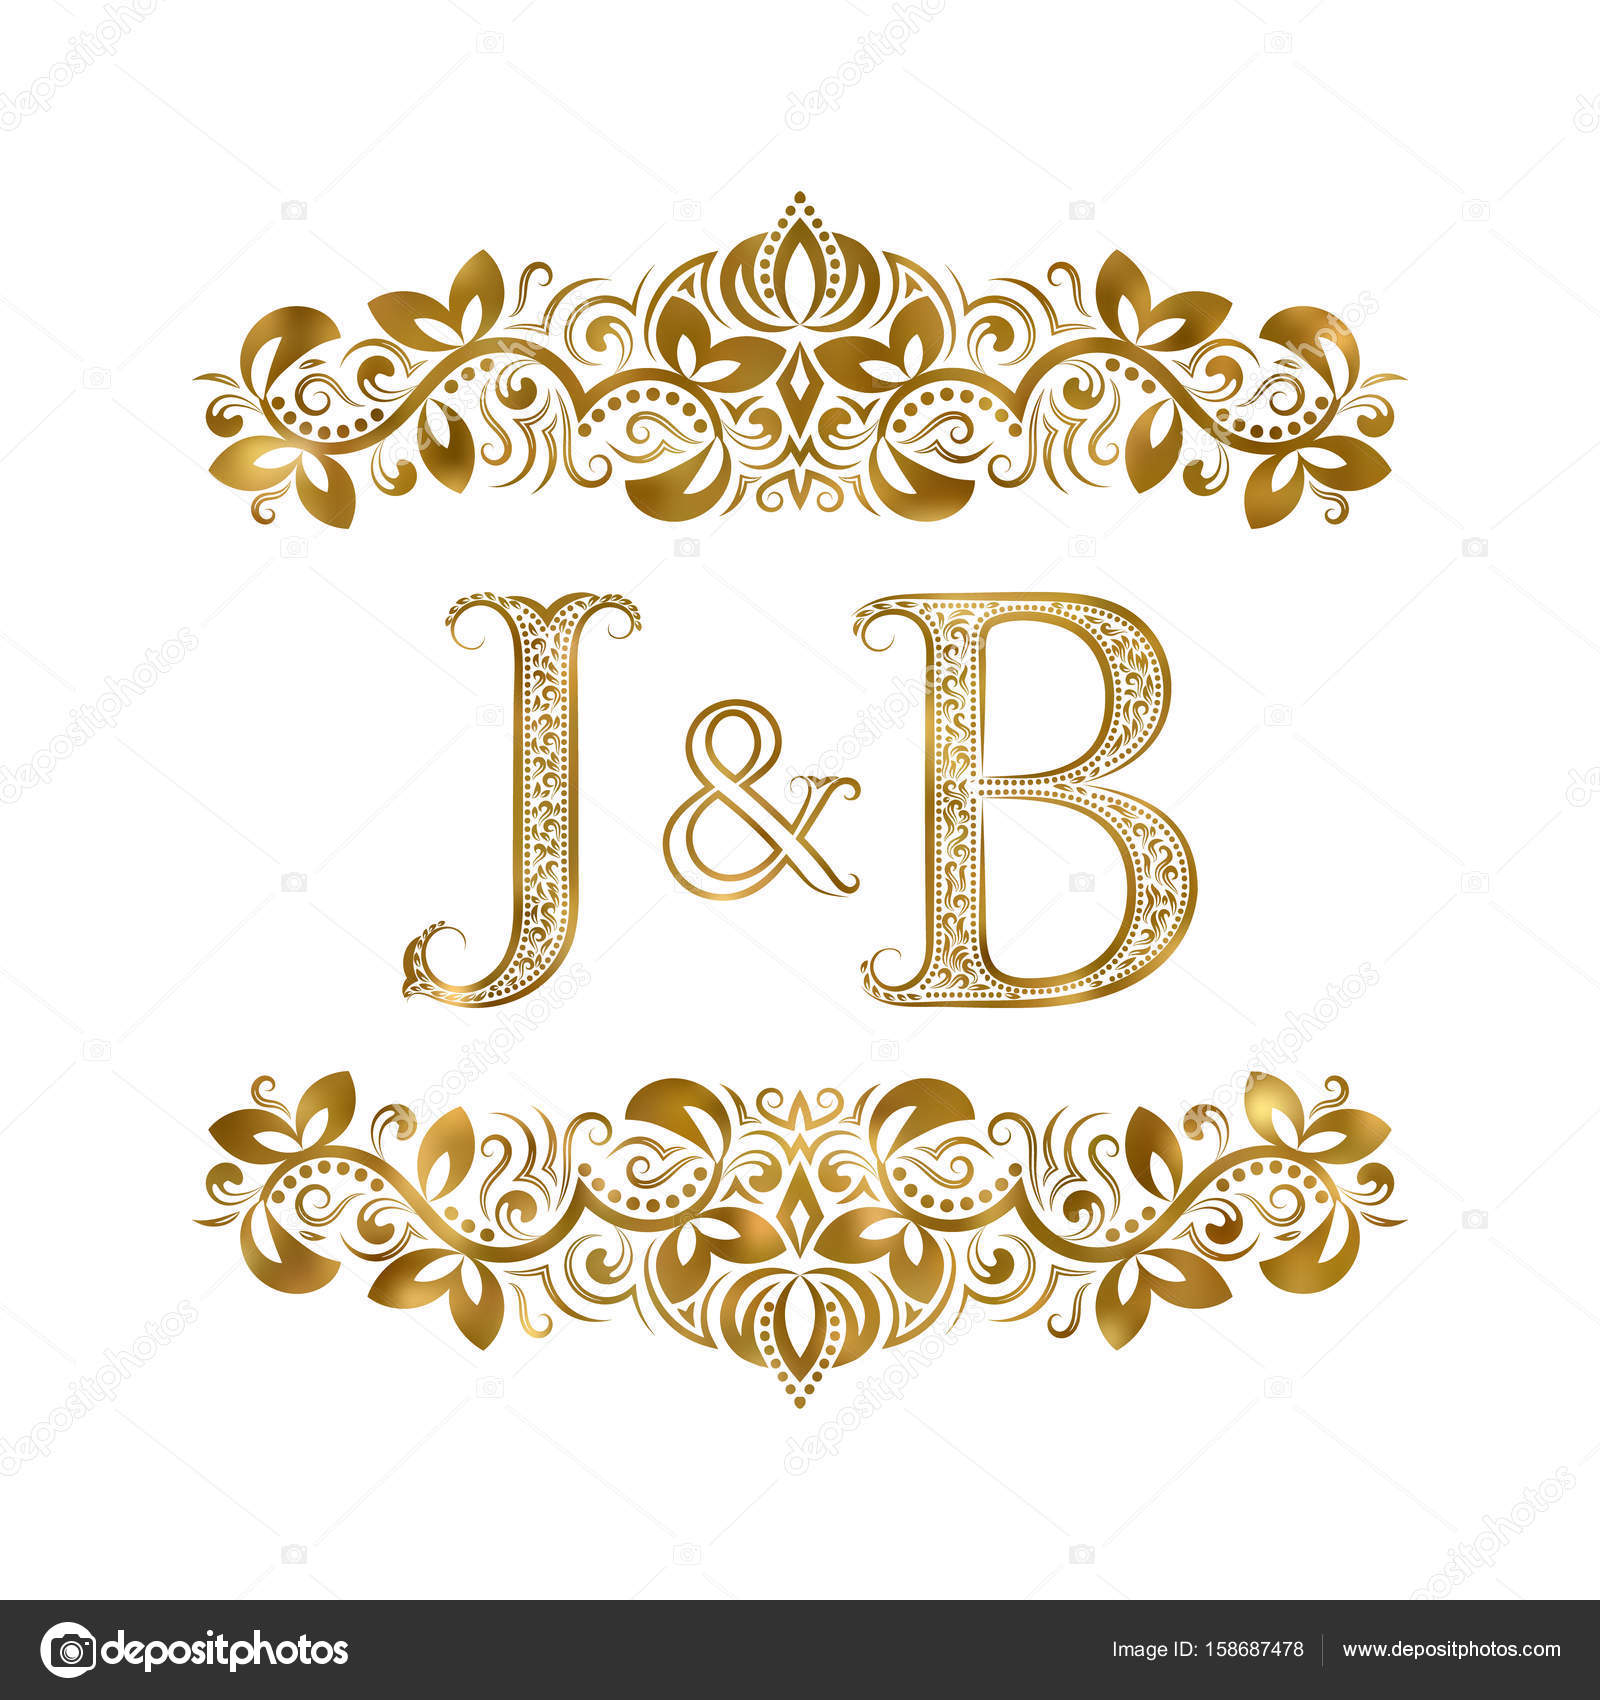 j and b vintage initials logo symbol the letters are surrounded by ornamental elements wedding or business partners monogram in royal style